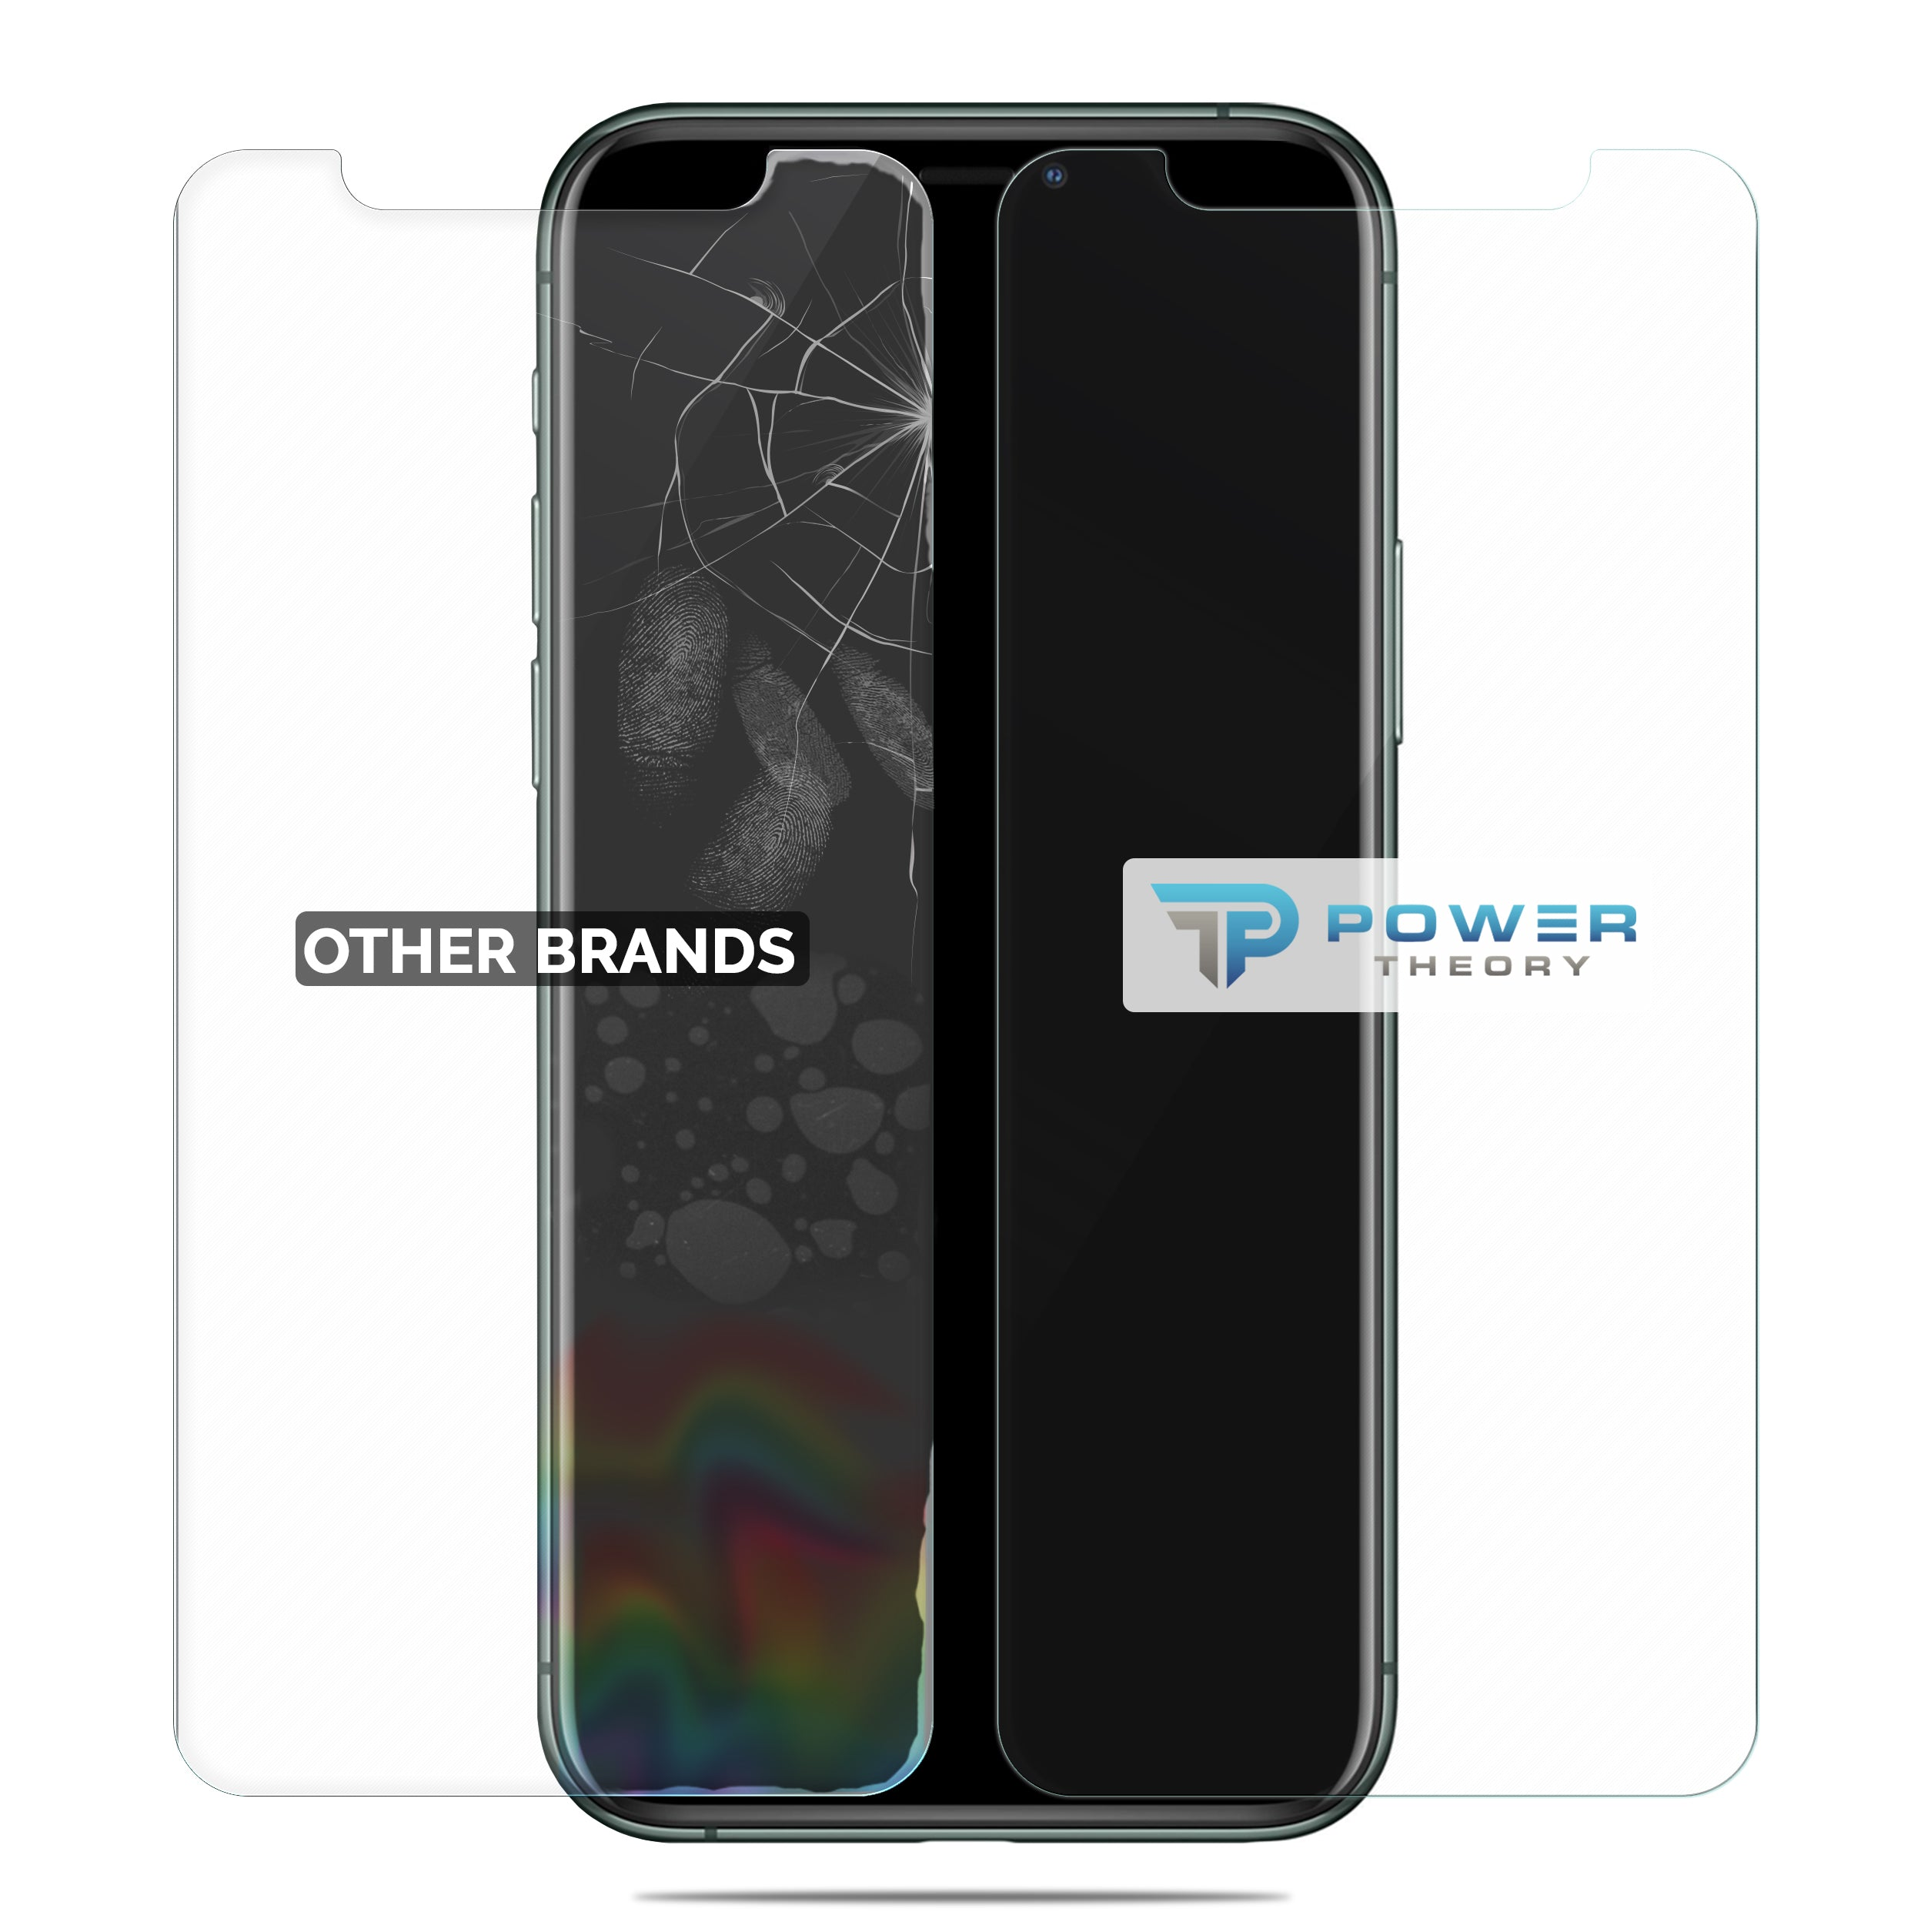 Power Theory iPhone 11 Pro Max Glass Screen Protector [2-Pack]